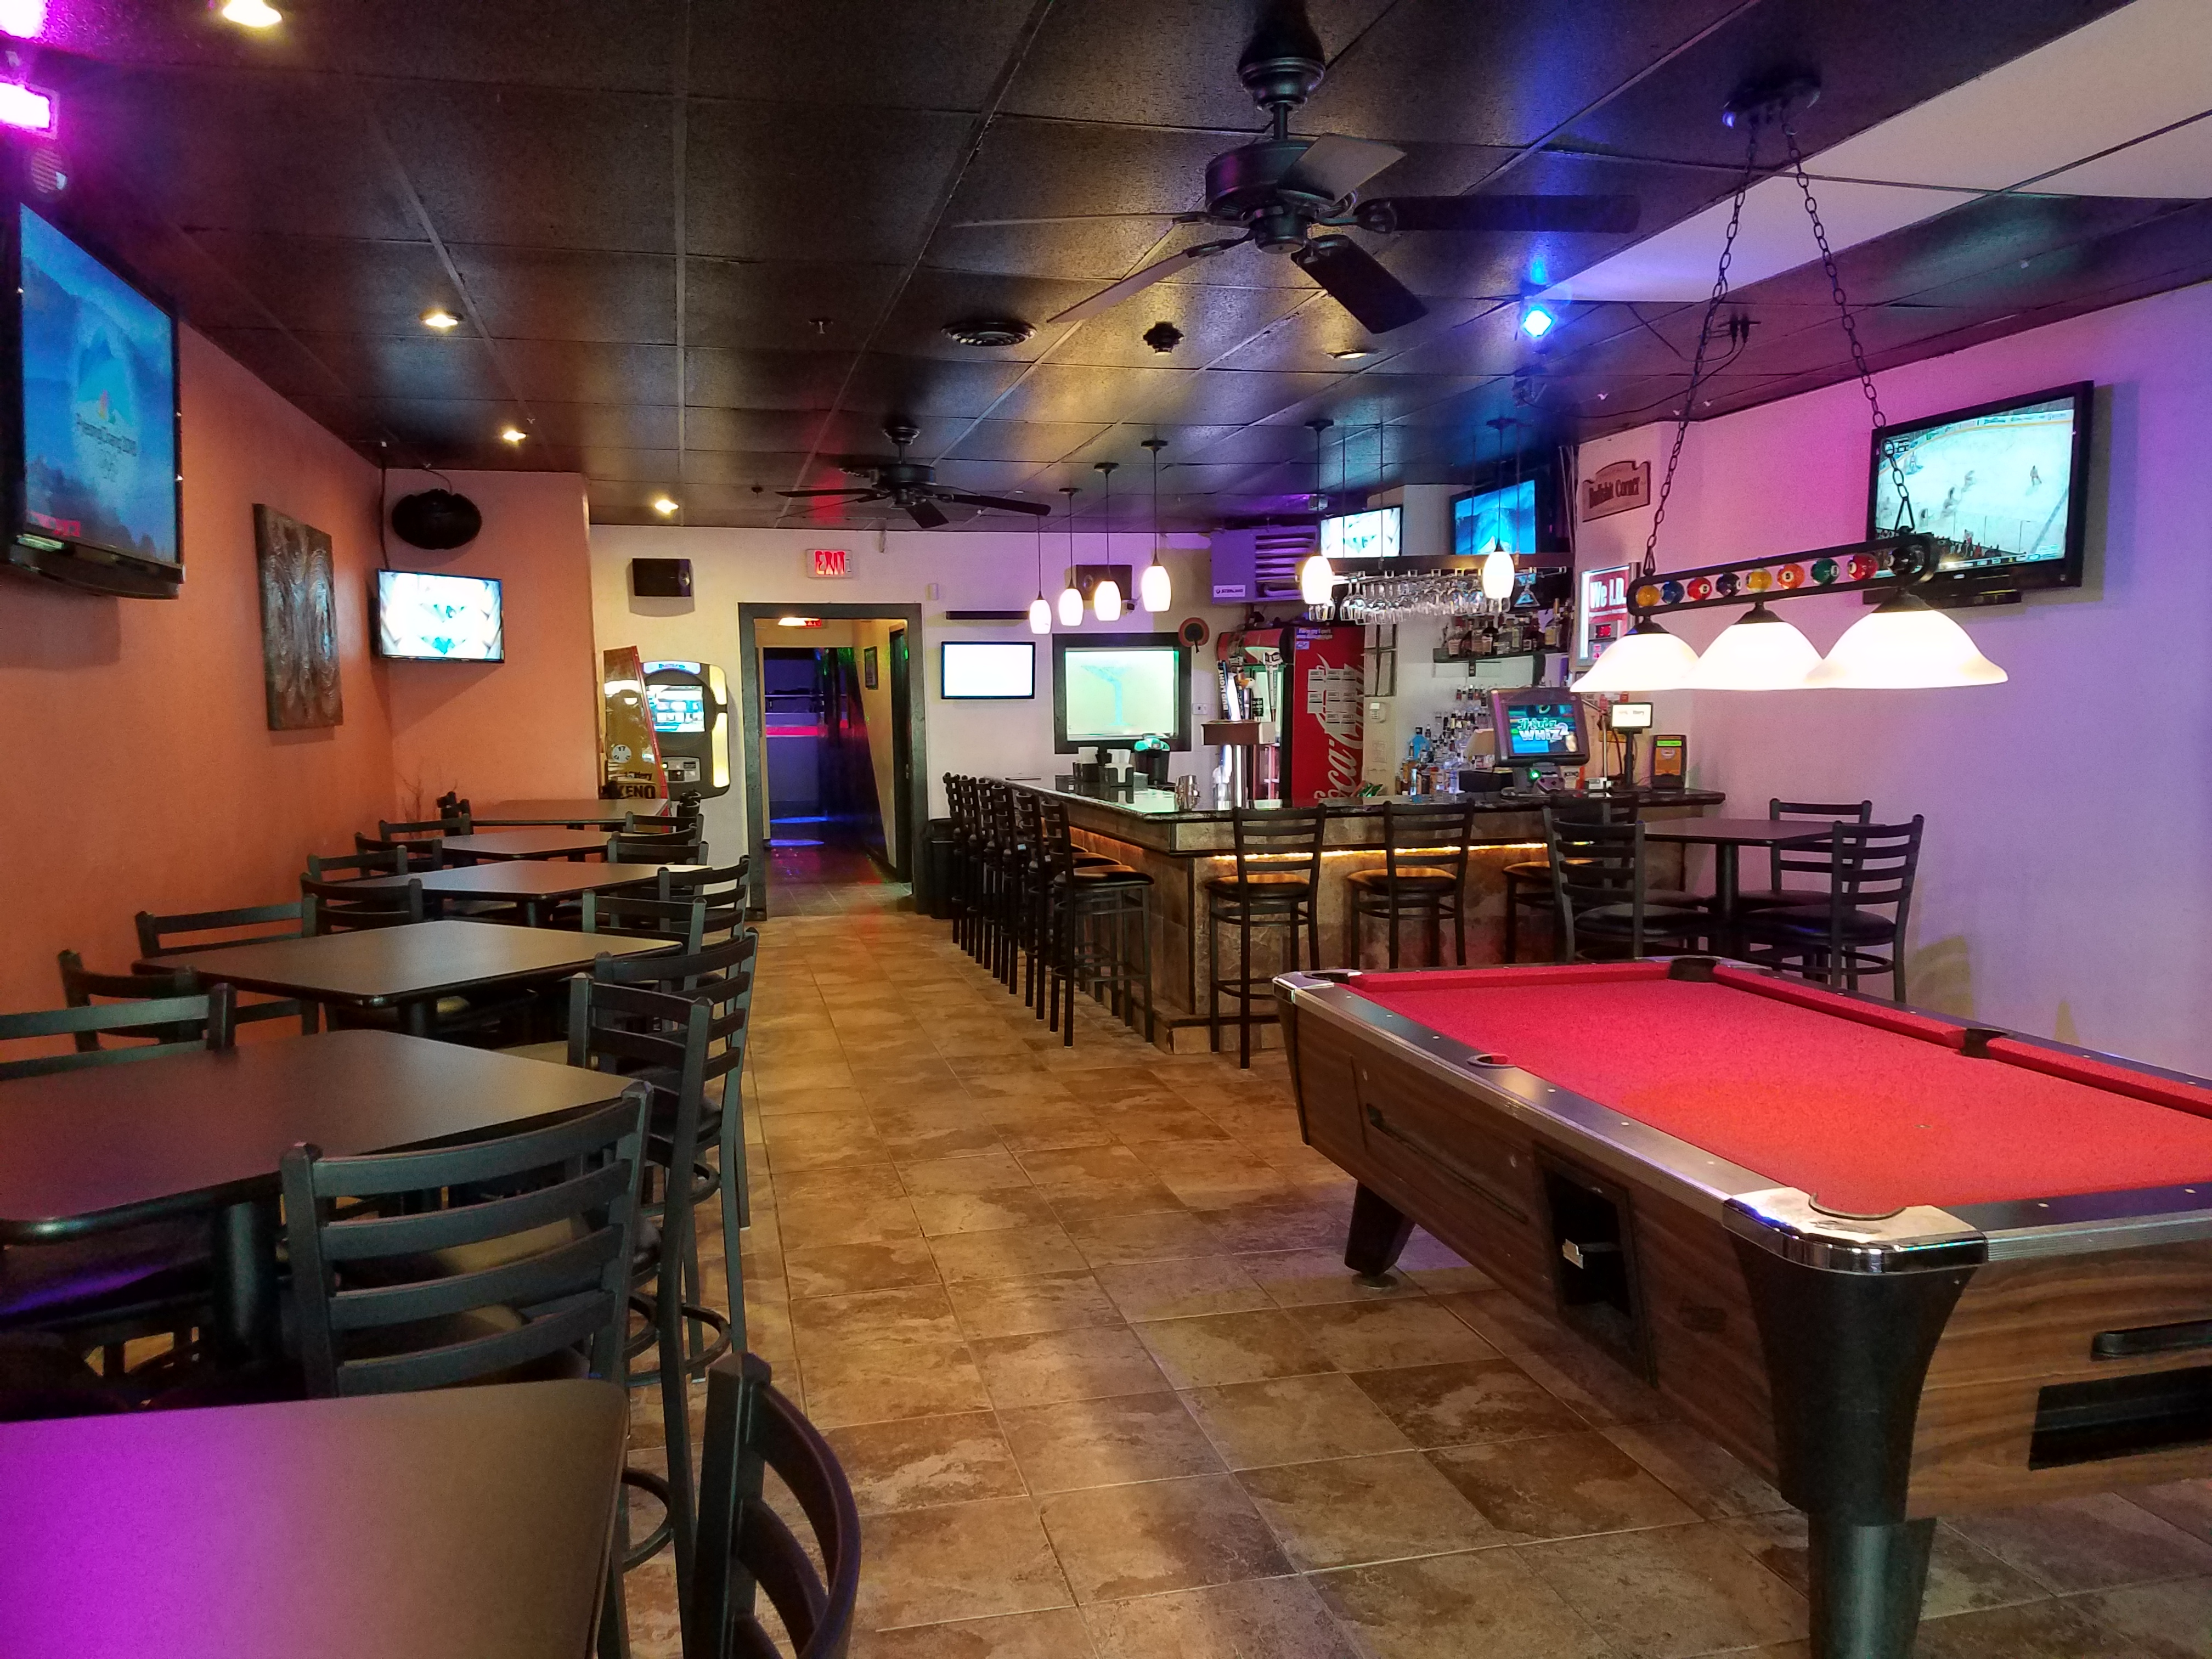 Gay bars in concord new hampshire. Gay bars in concord new ...